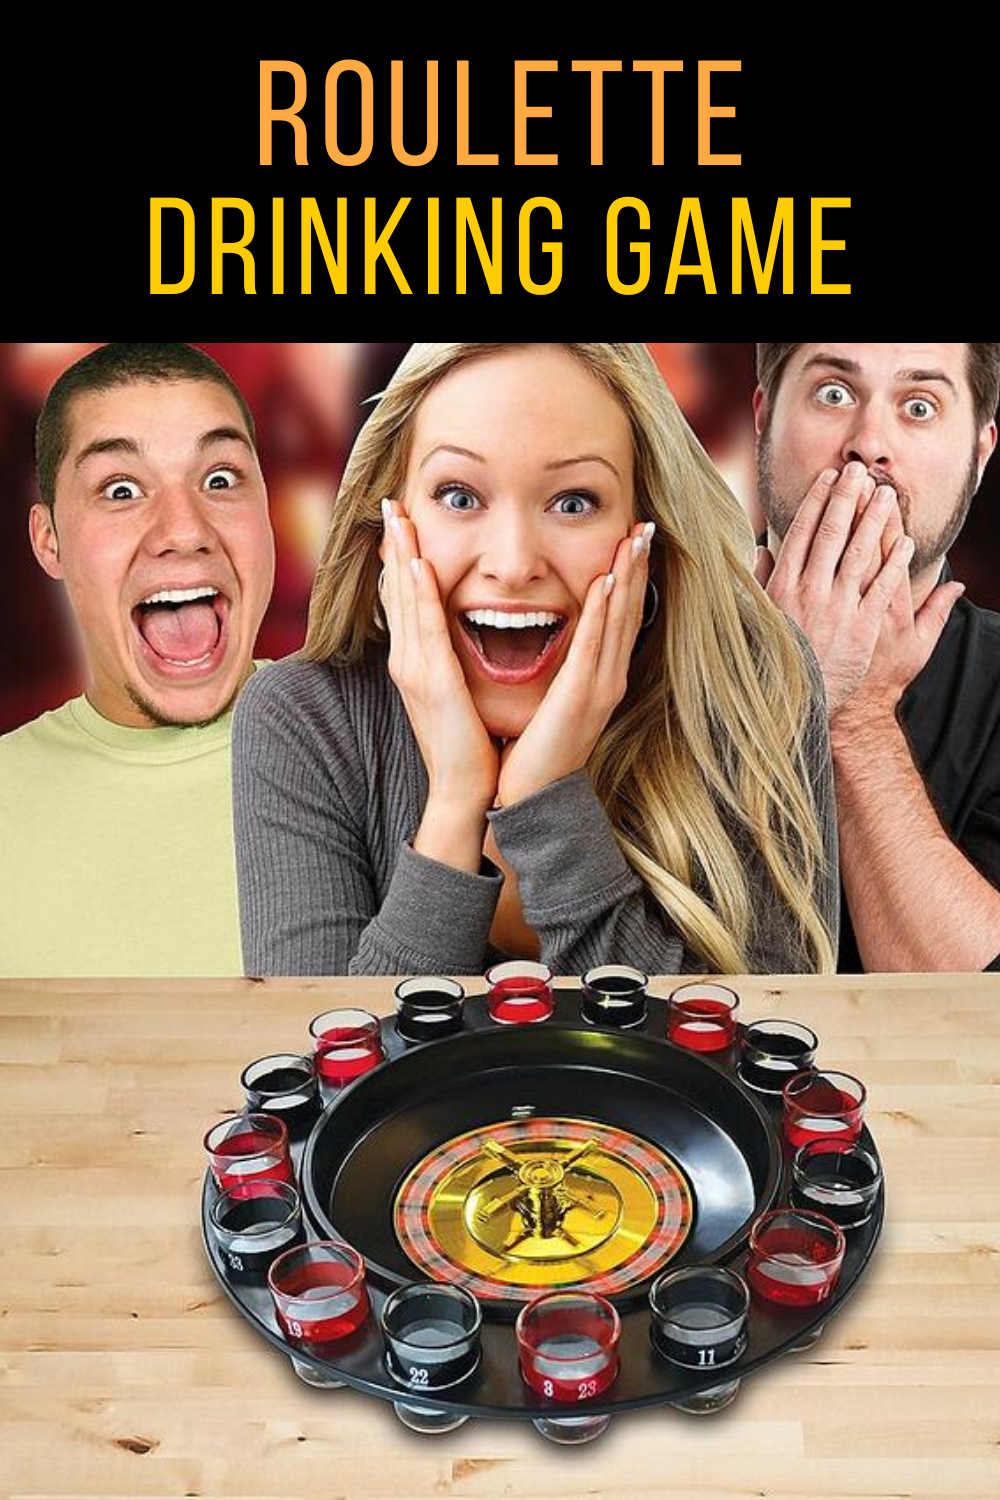 Roulette Shot Drinking Game in 2020 Drinking games, Shot